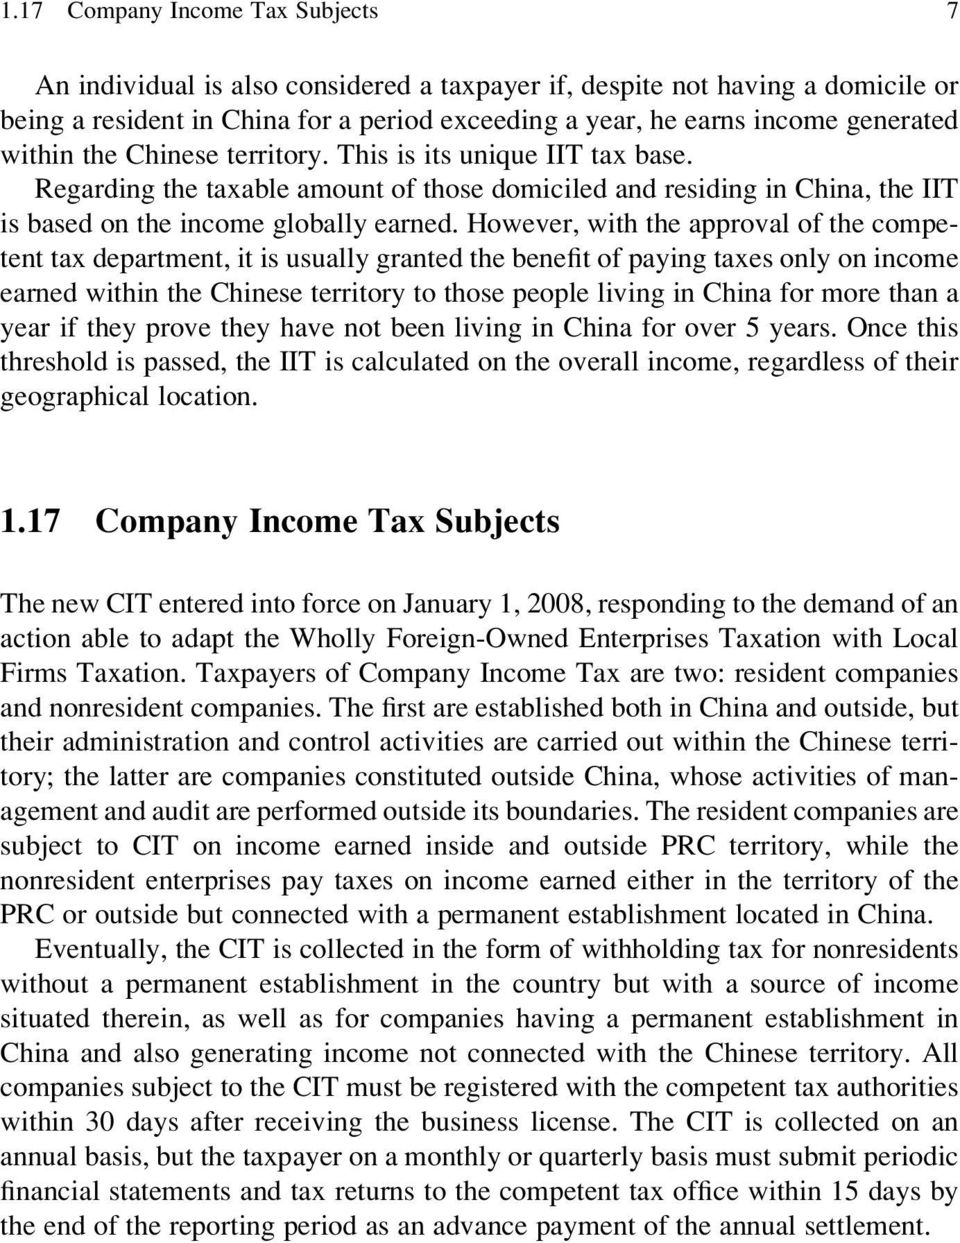 However, with the approval of the competent tax department, it is usually granted the benefit of paying taxes only on income earned within the Chinese territory to those people living in China for